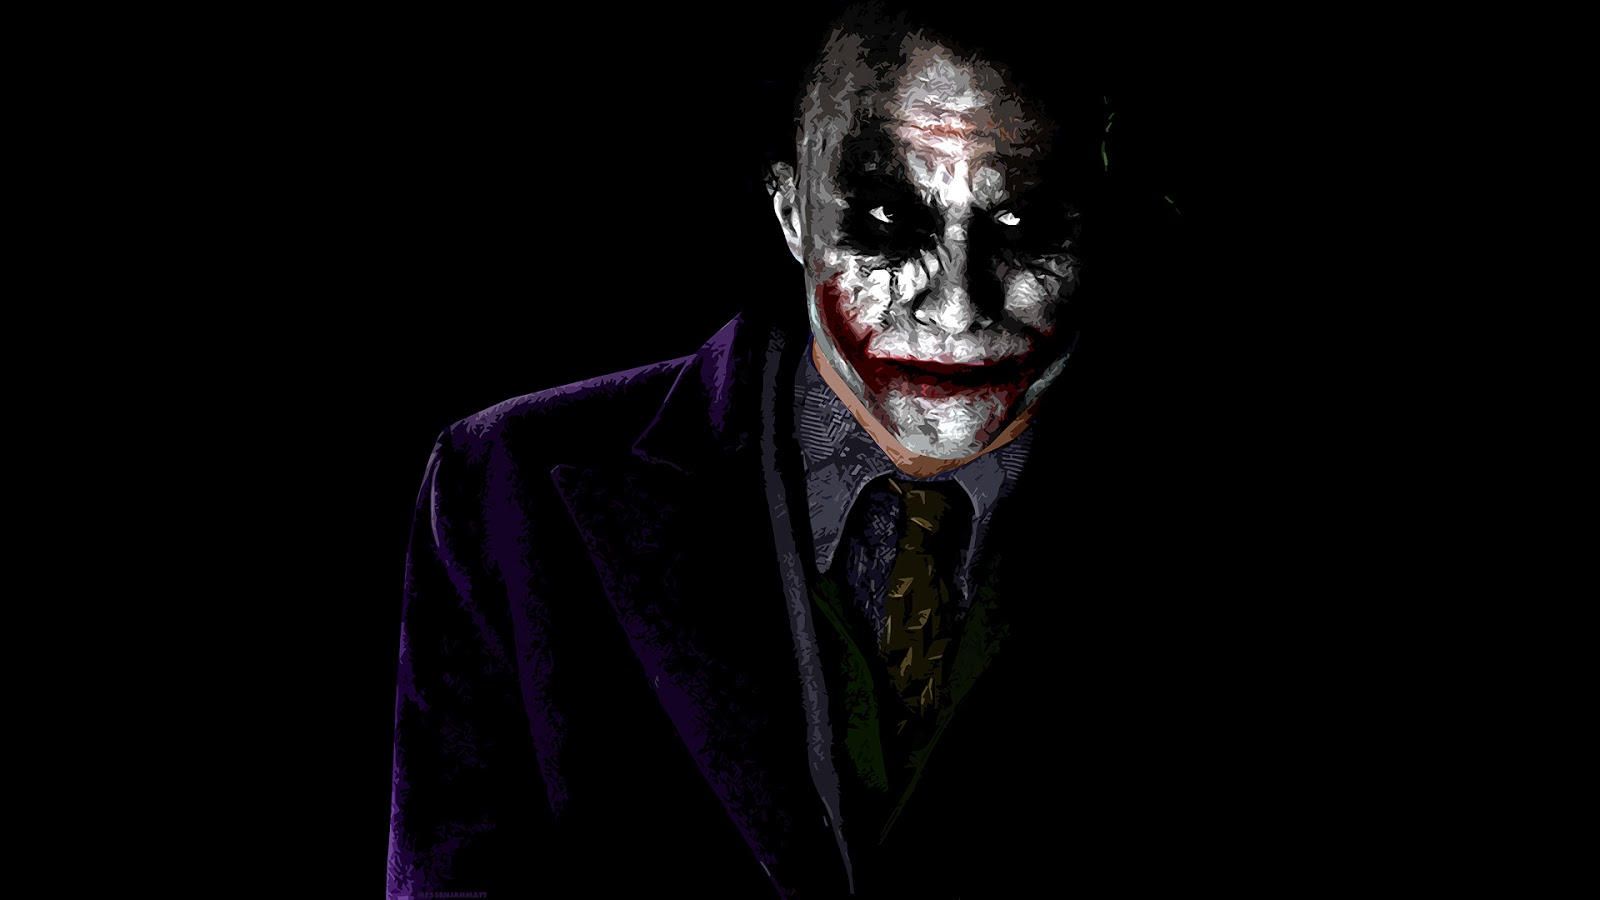 Pic New Posts: Joker Iphone Wallpapers Hd